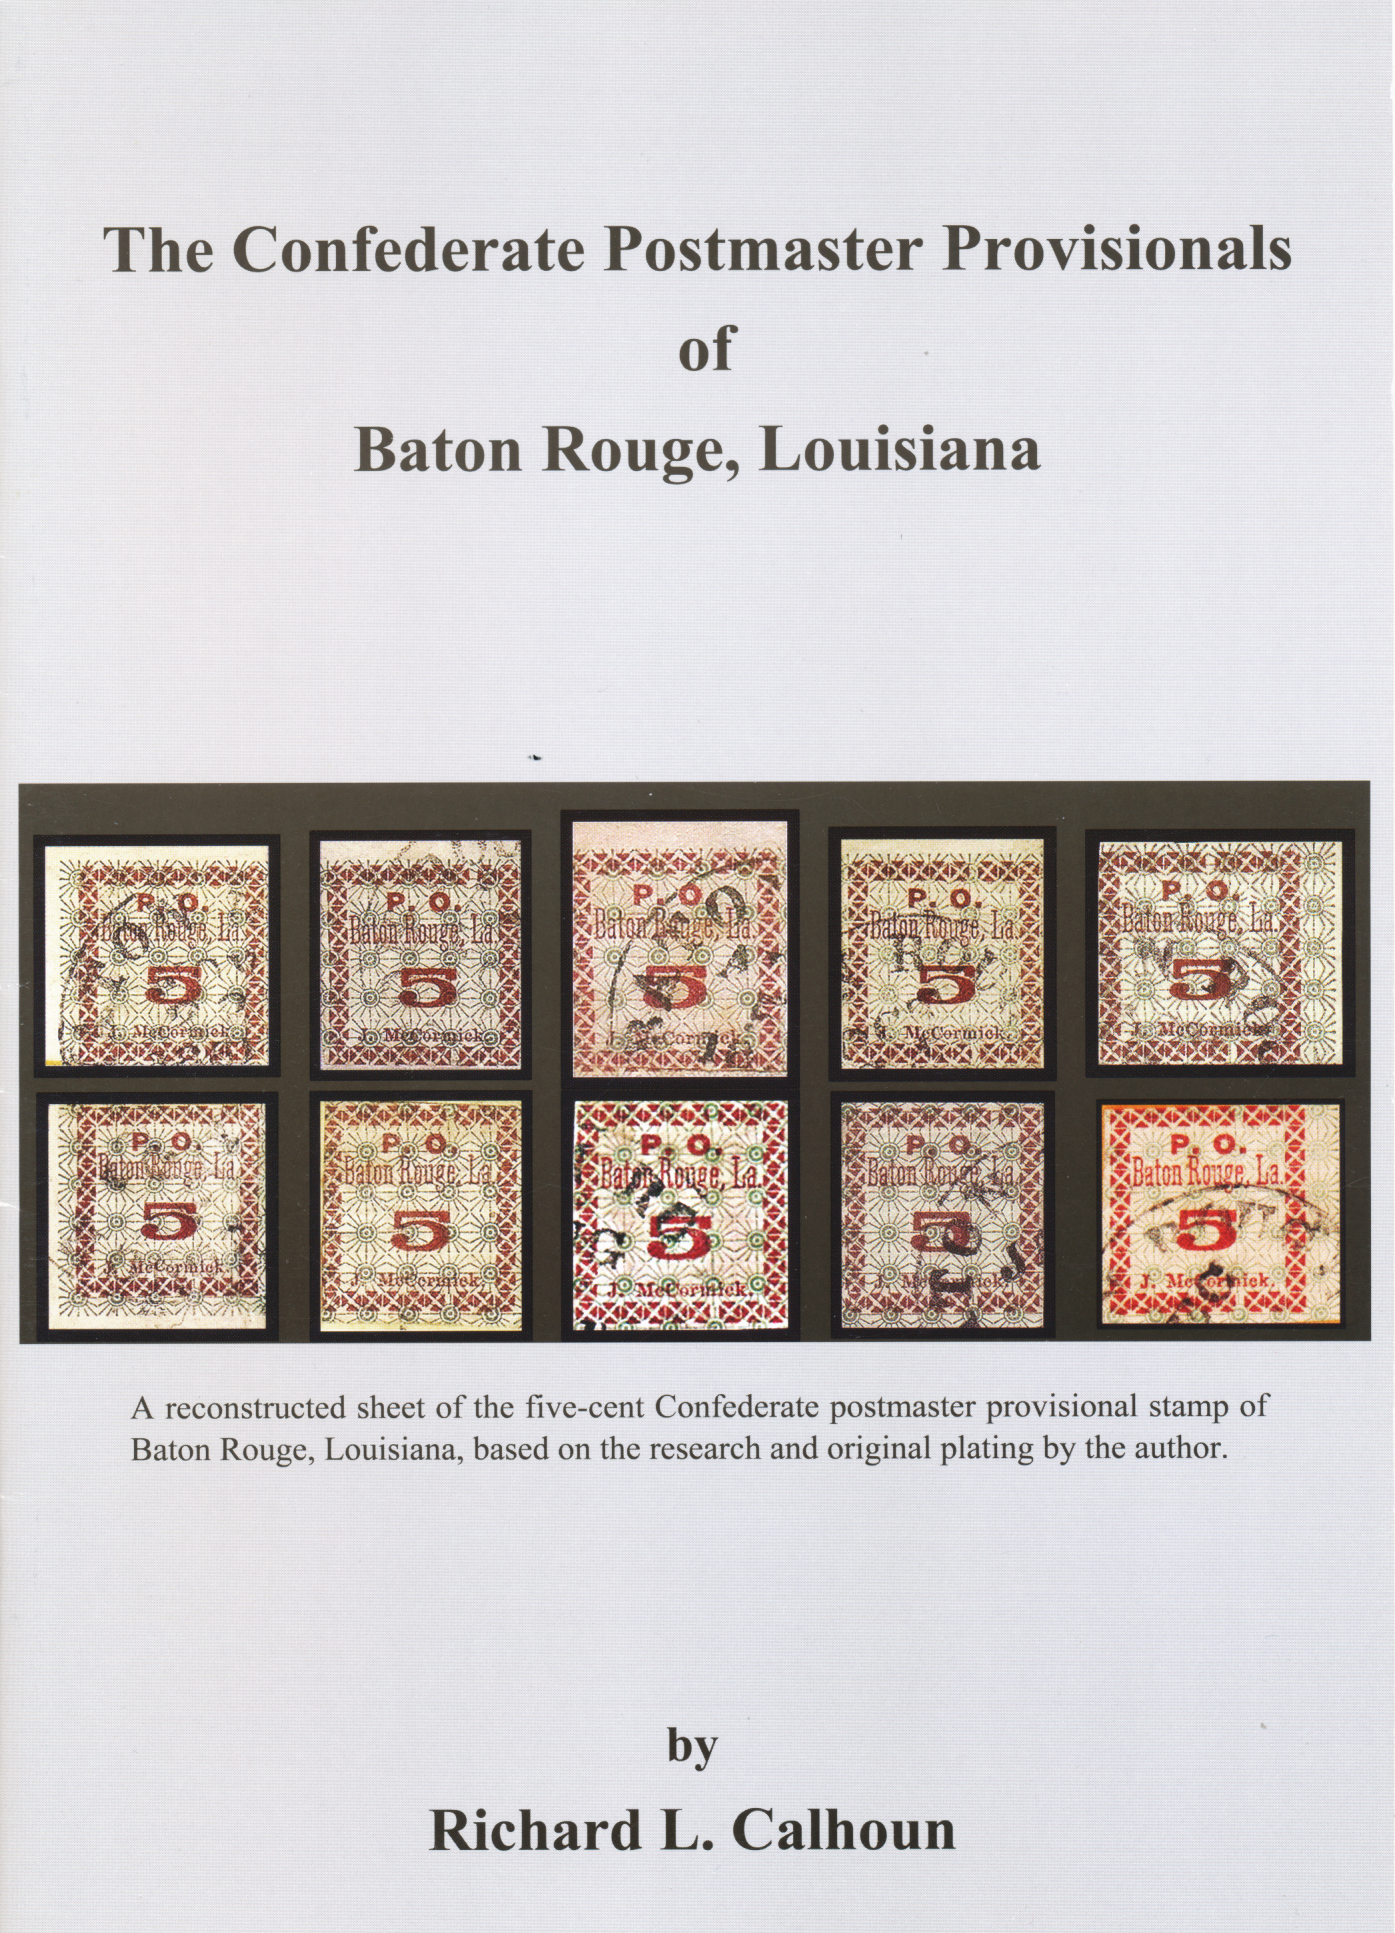 The Confederate Postmaster Provisionals of Baton Rouge